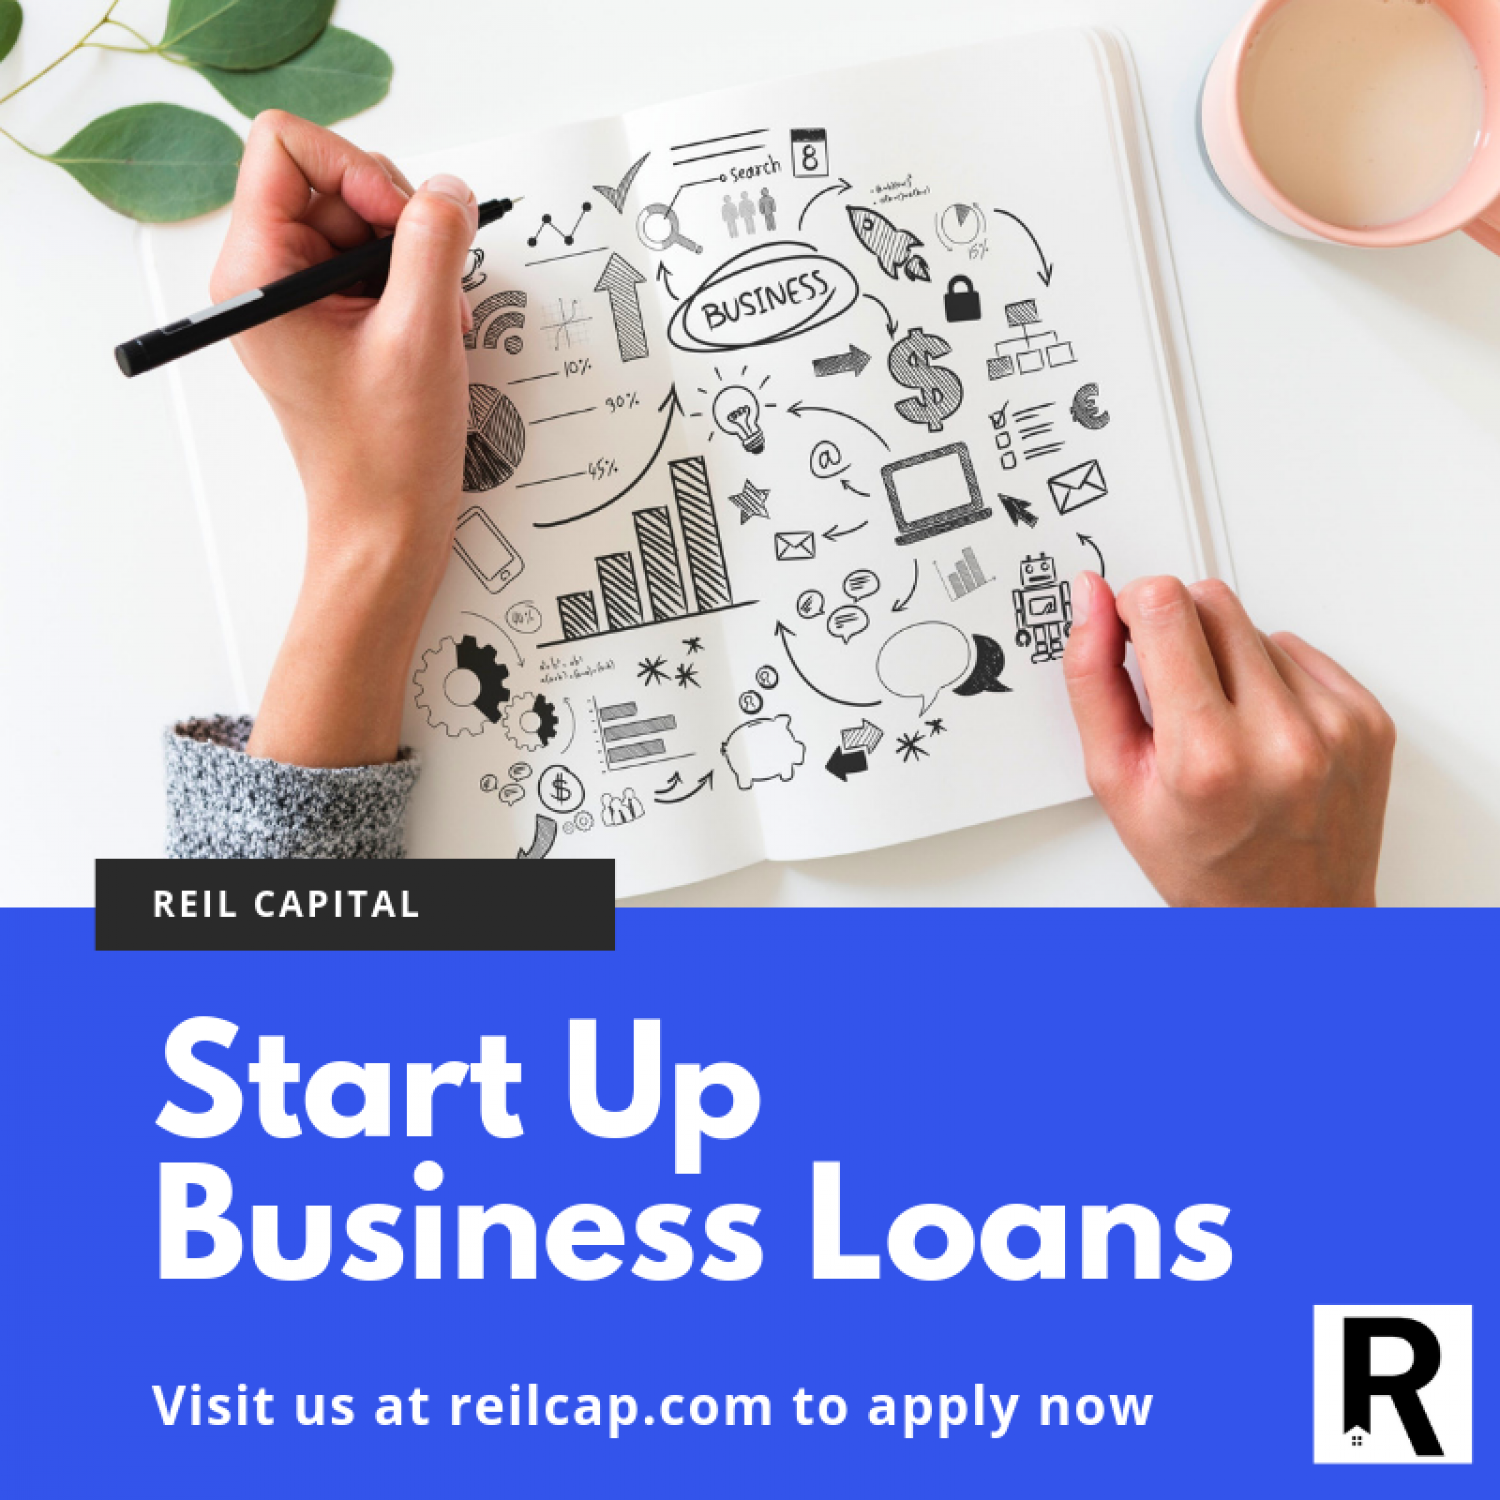 Start Up Business Loans Infographic